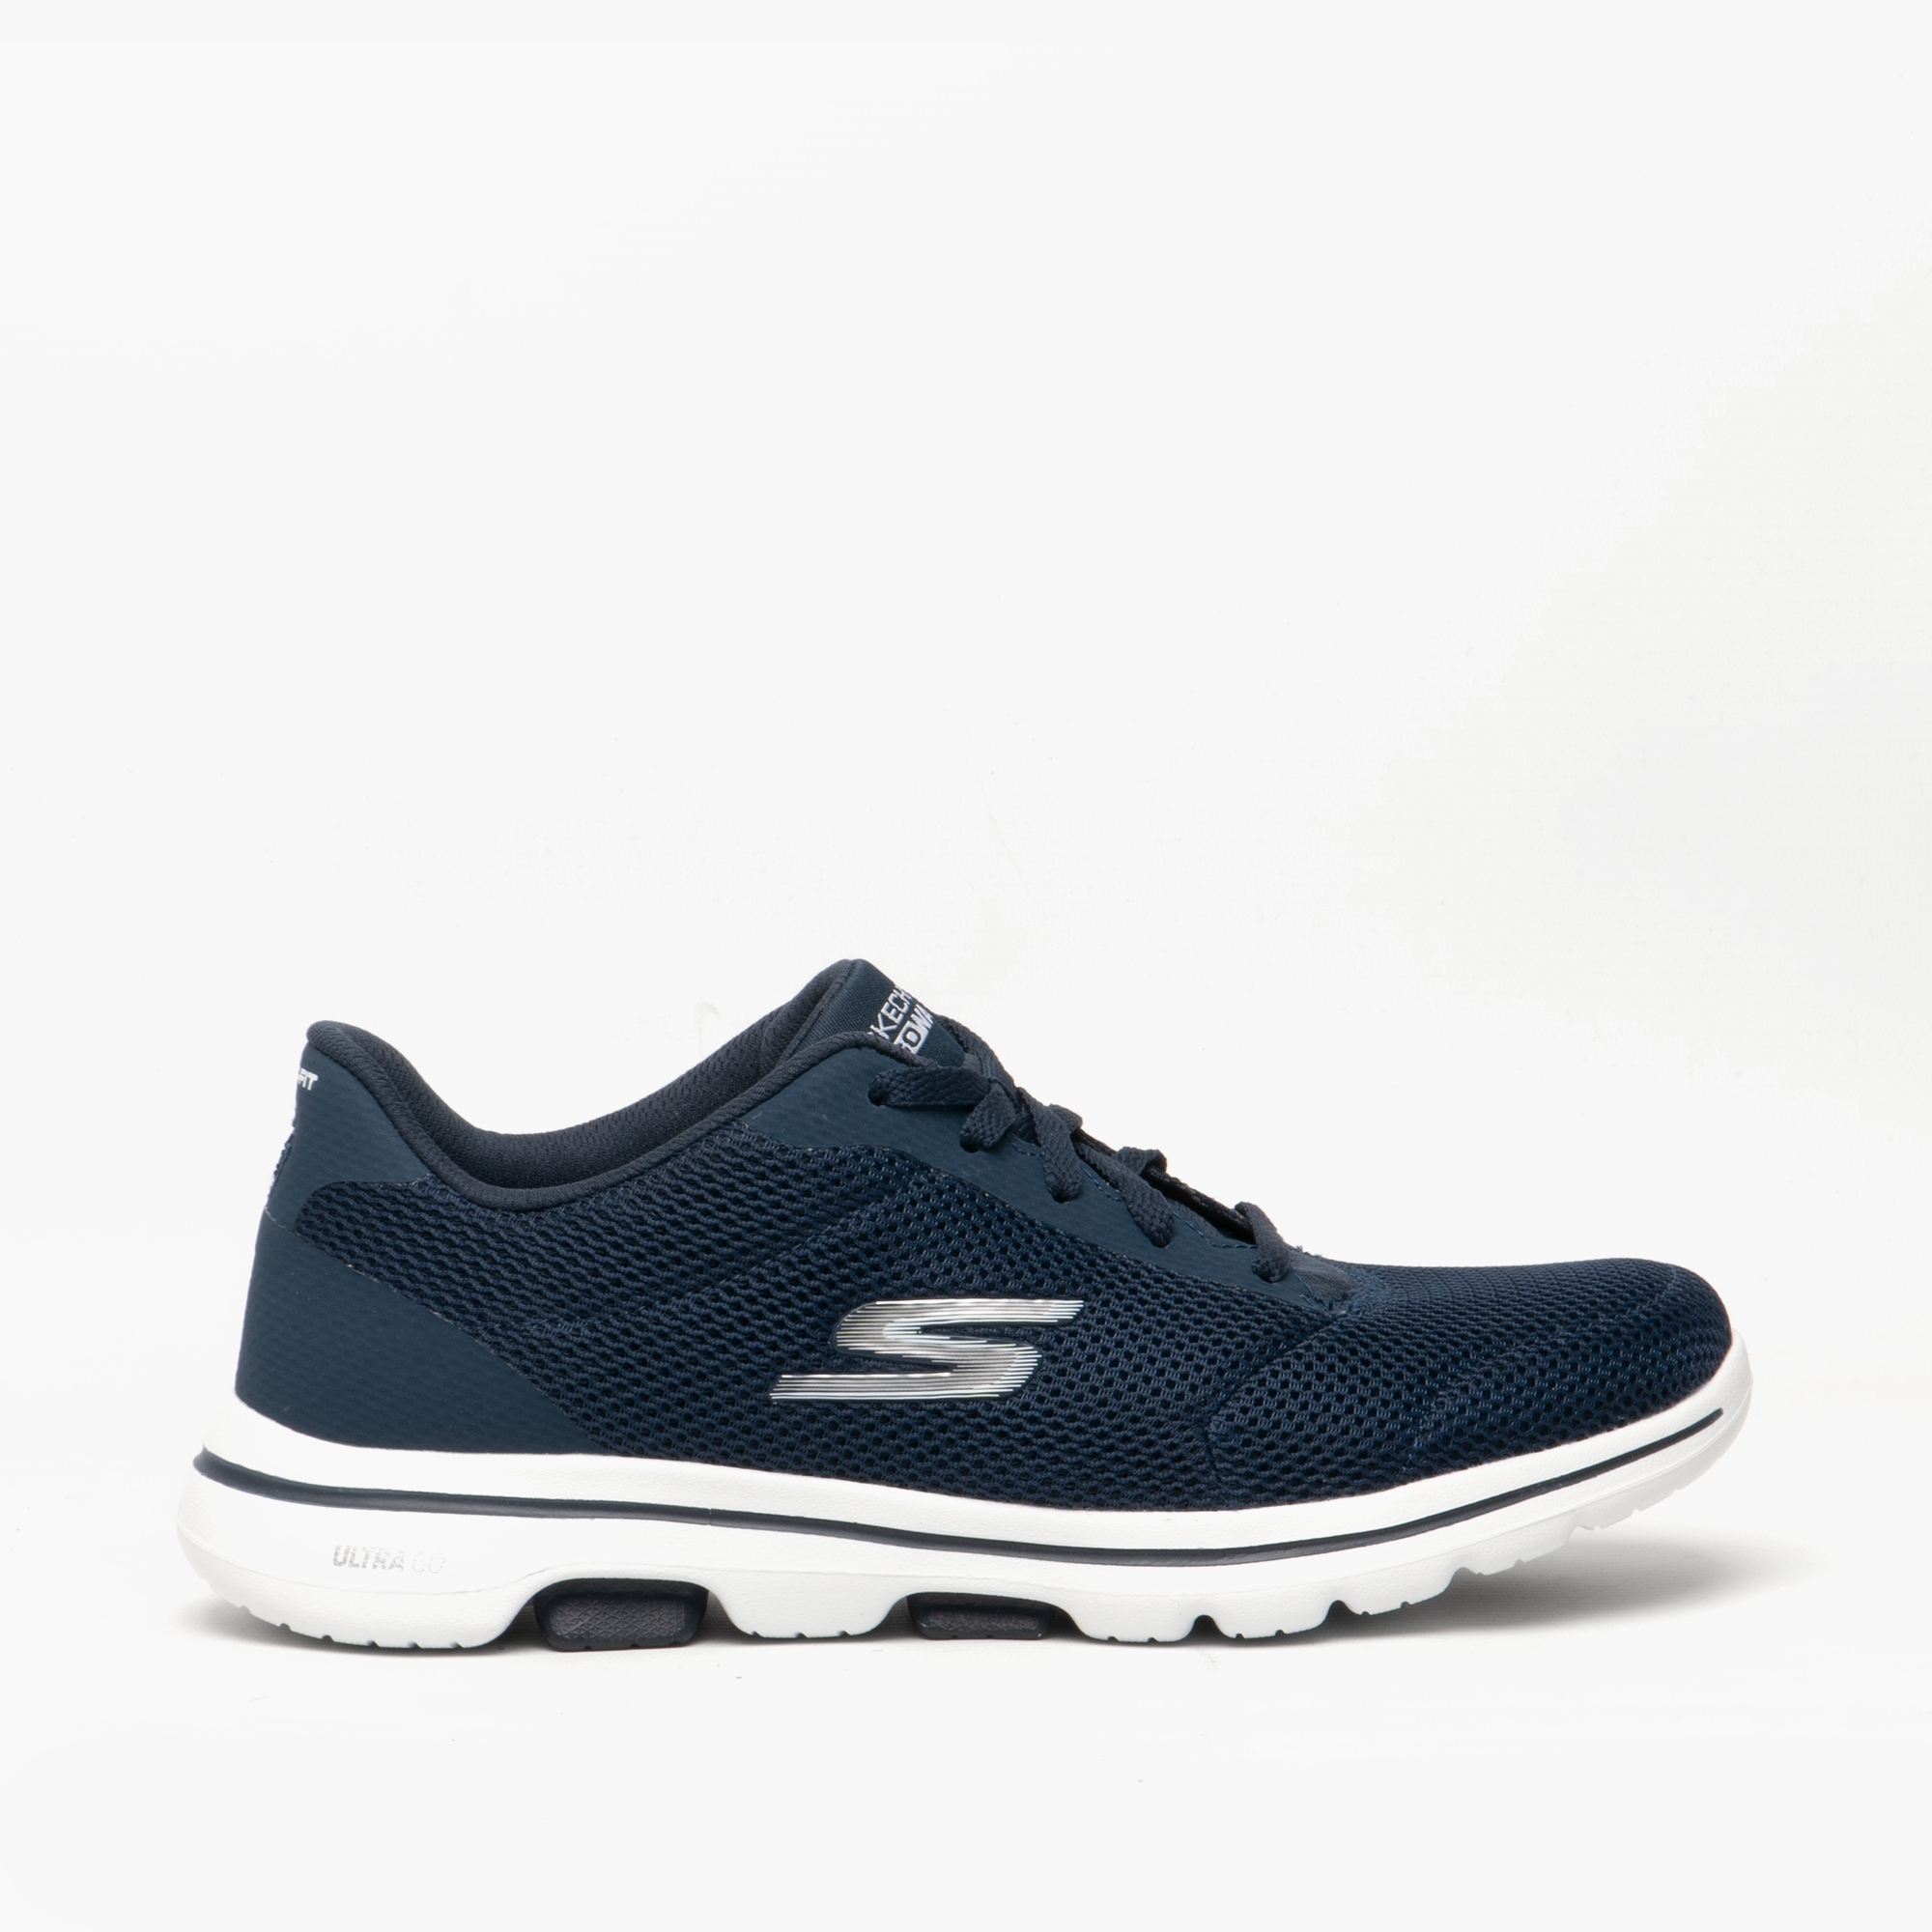 Skechers Trainers in B37 Solihull for